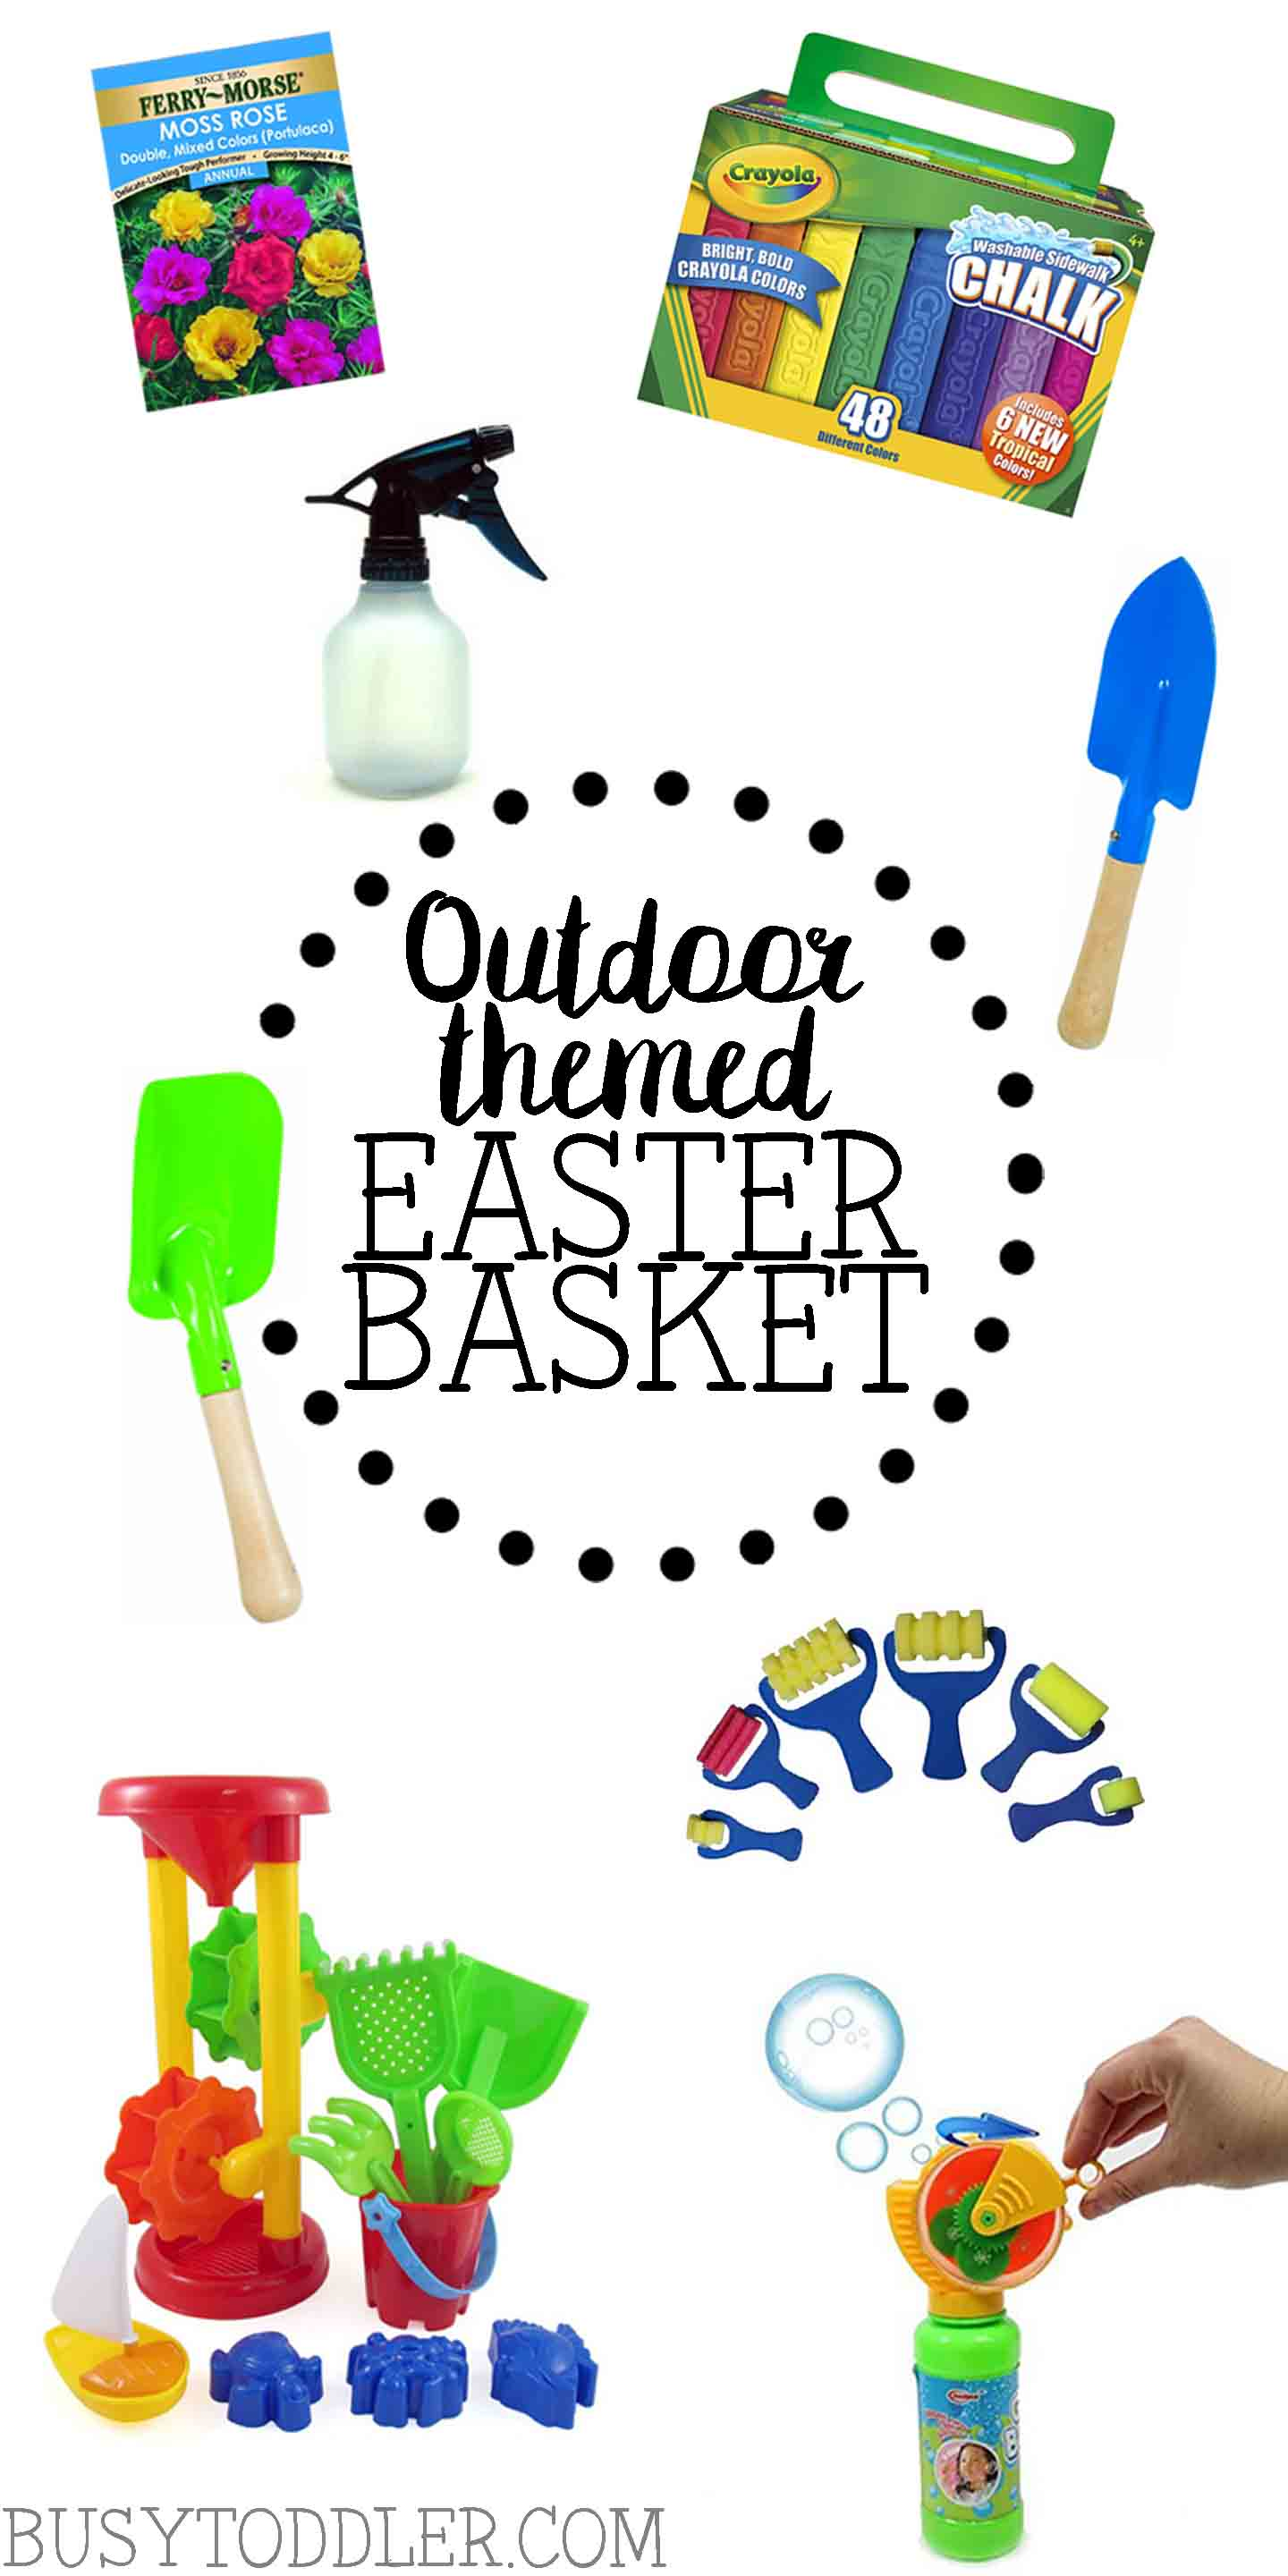 OUTDOOR THEMED EASTER BASKET: Build a great Easter basket full of supplies for outdoor activities for kids. Toddler and preschoolers will love this simple Easter basket.